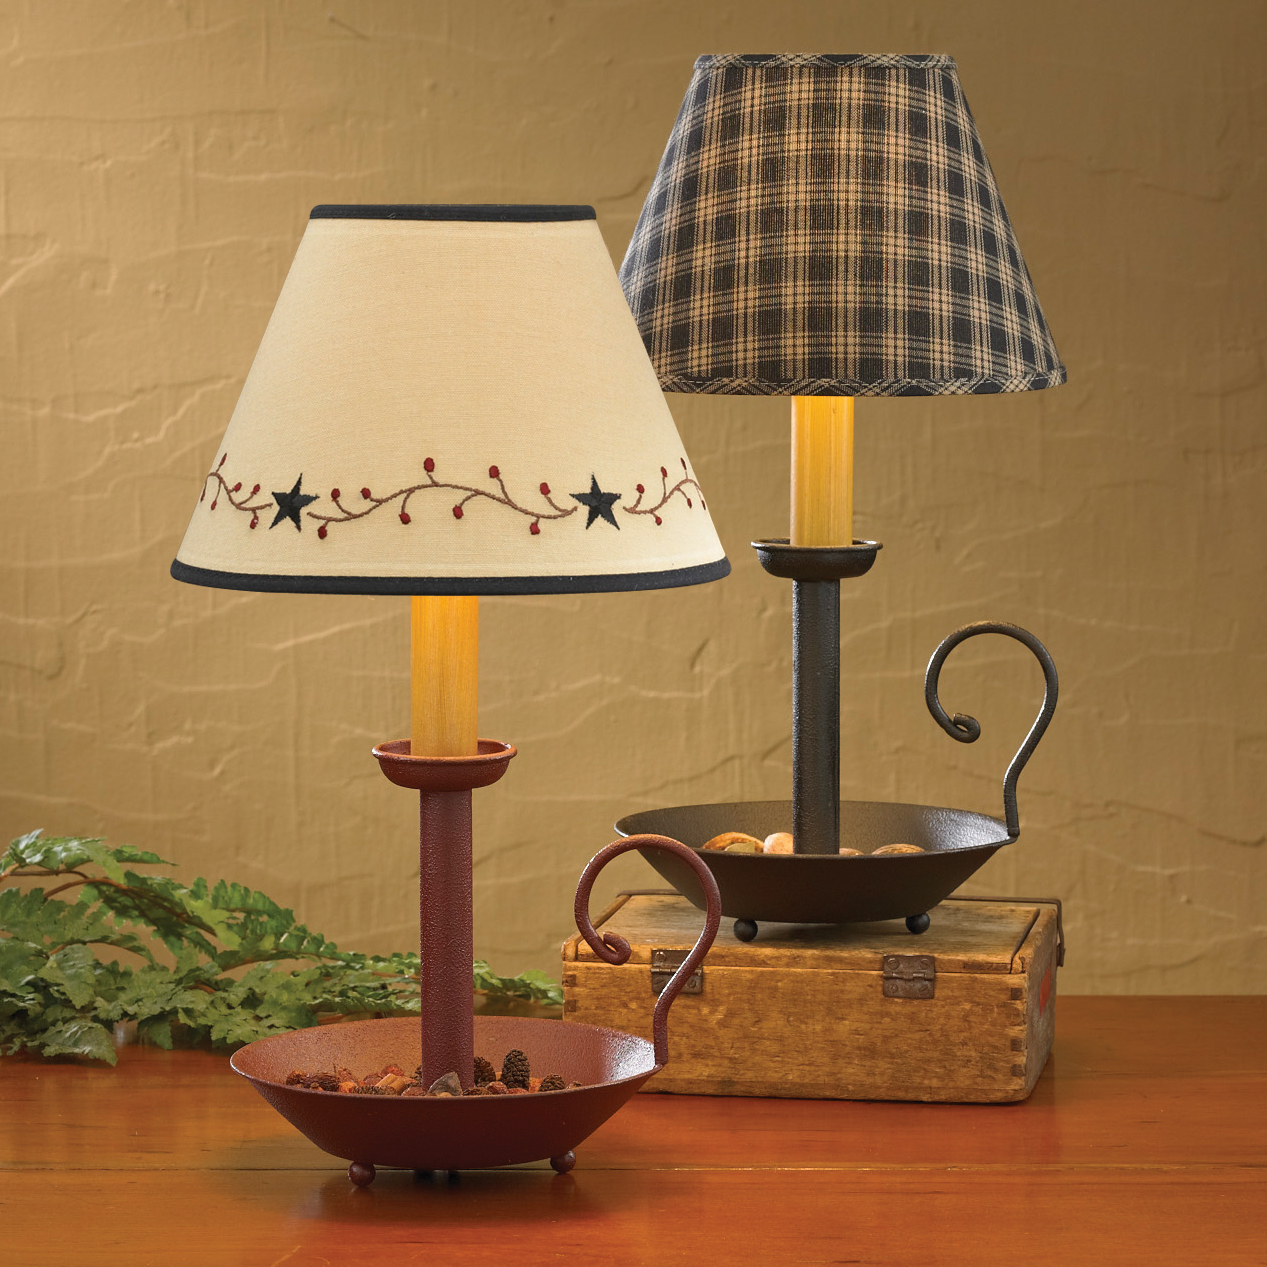 House Table Lamp Country Table Lamps Lamps For Your Home Decor Warisan